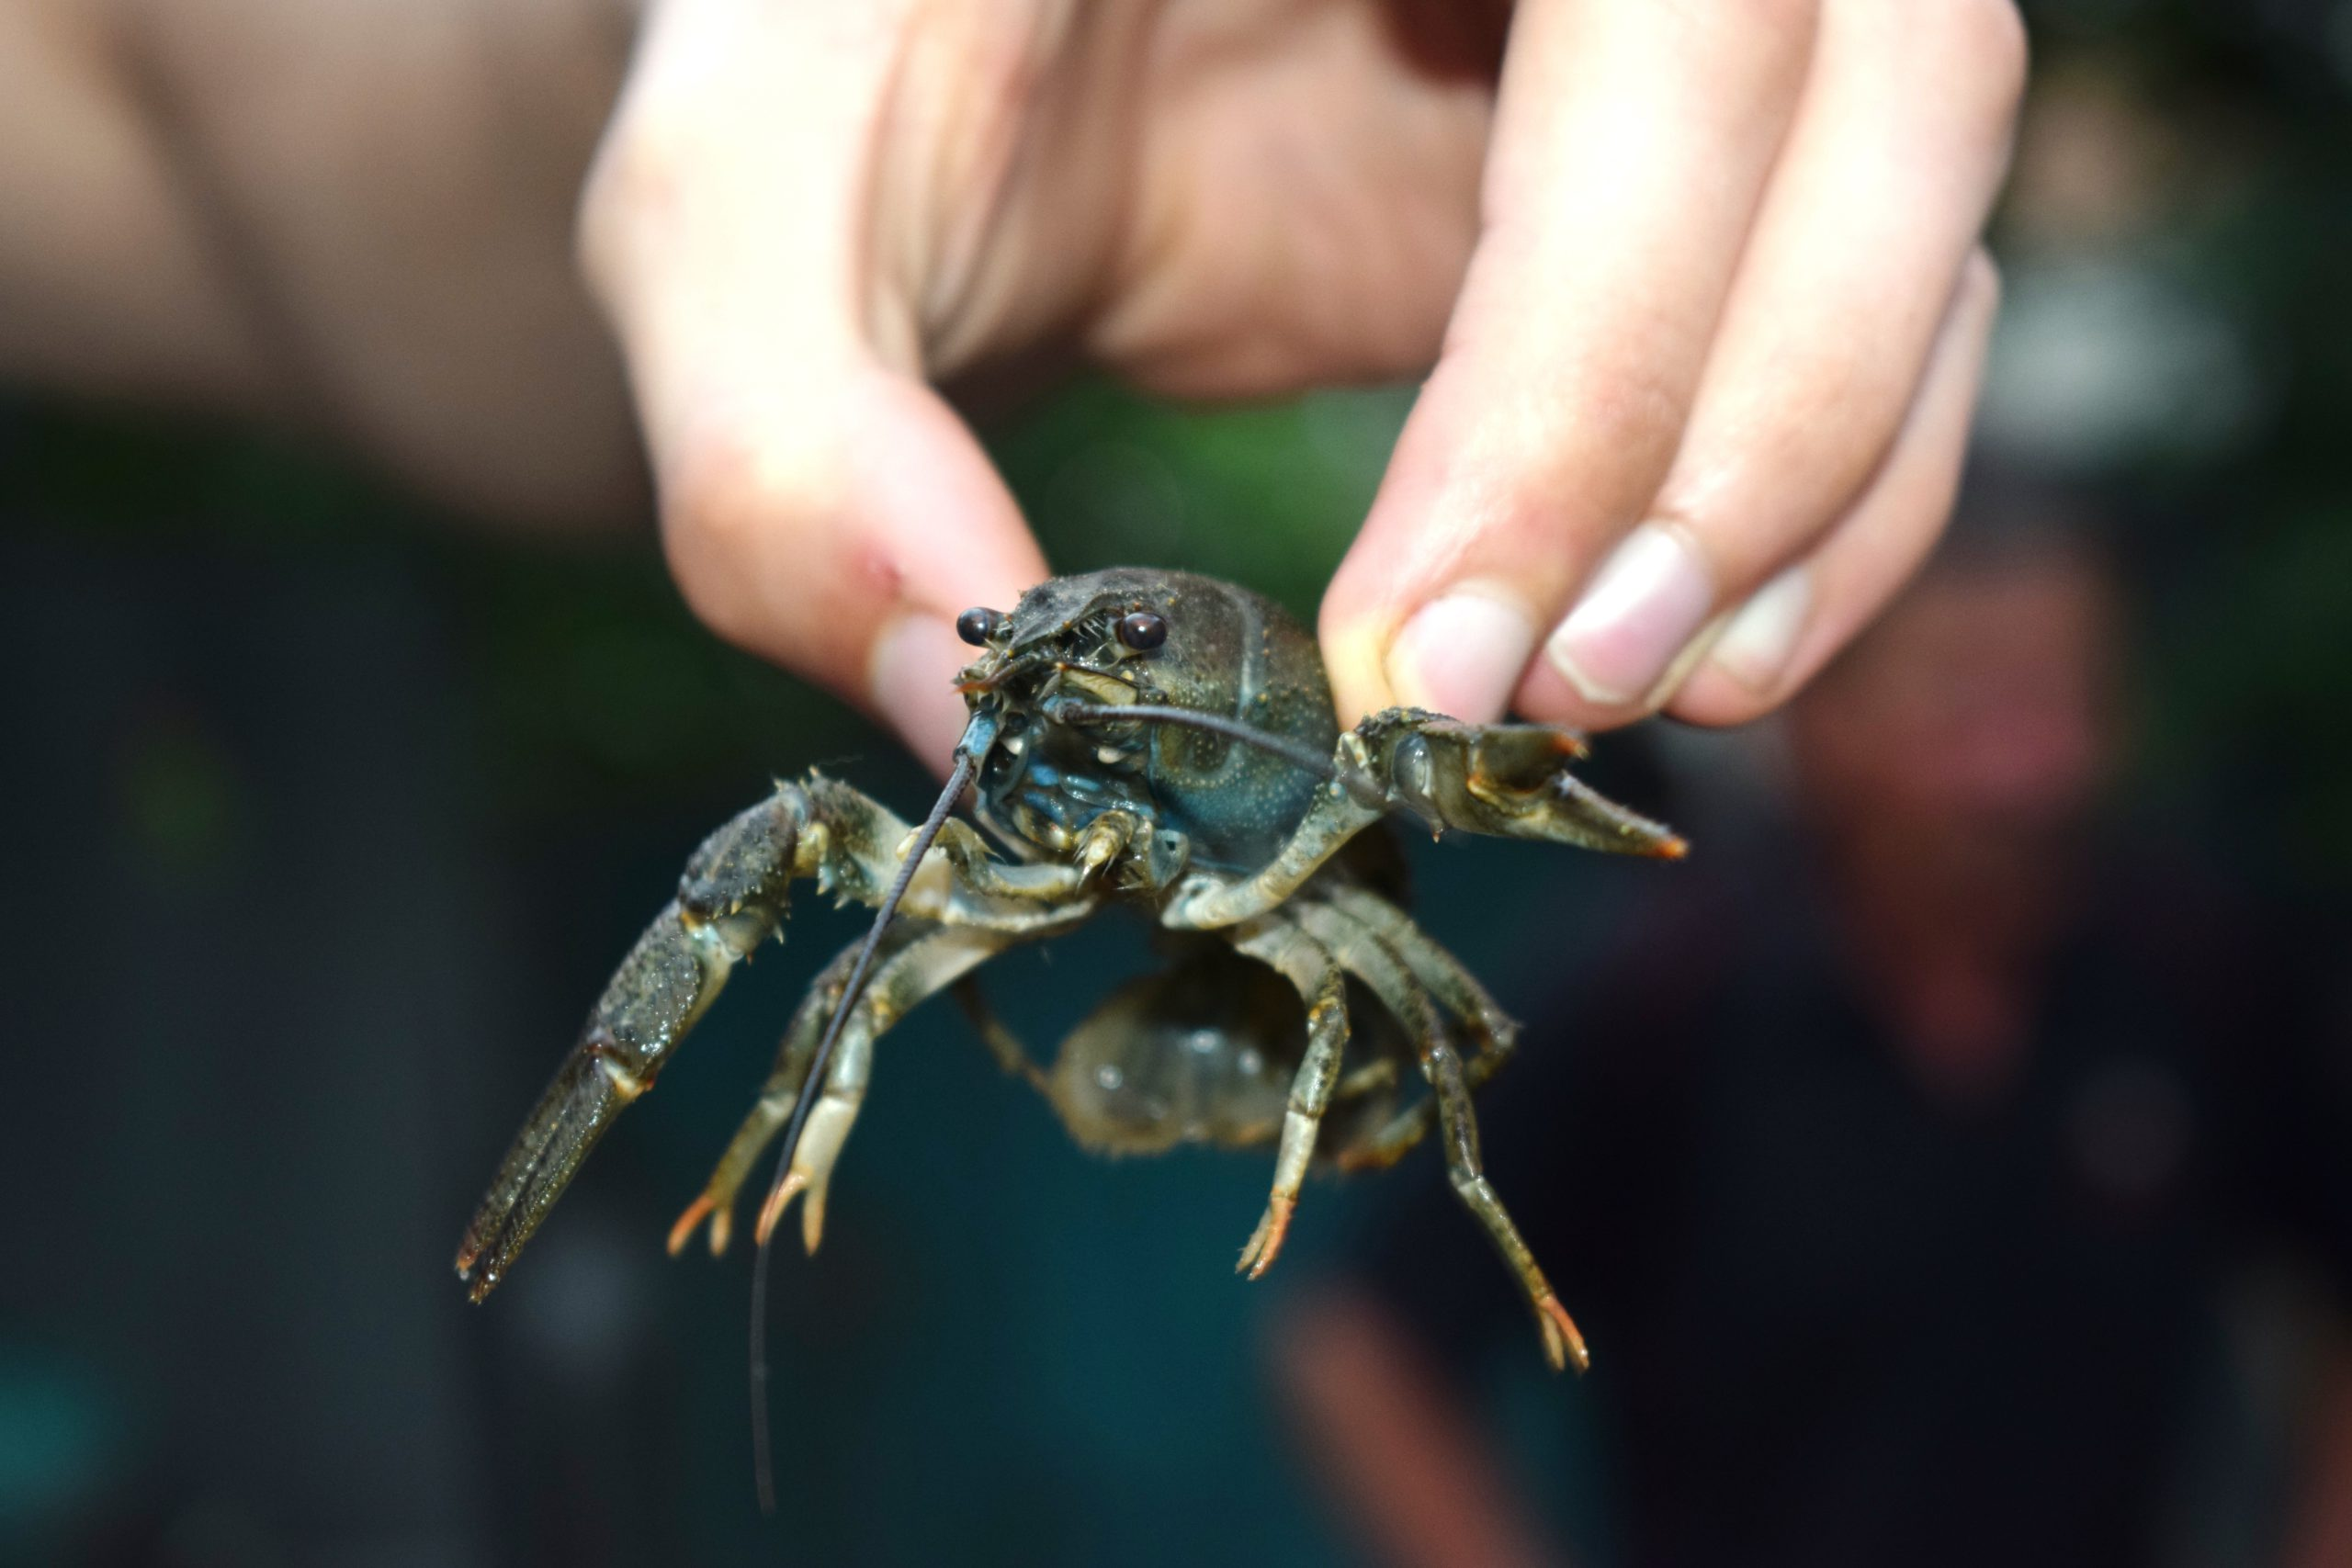 European crayfish in a hand over grass.